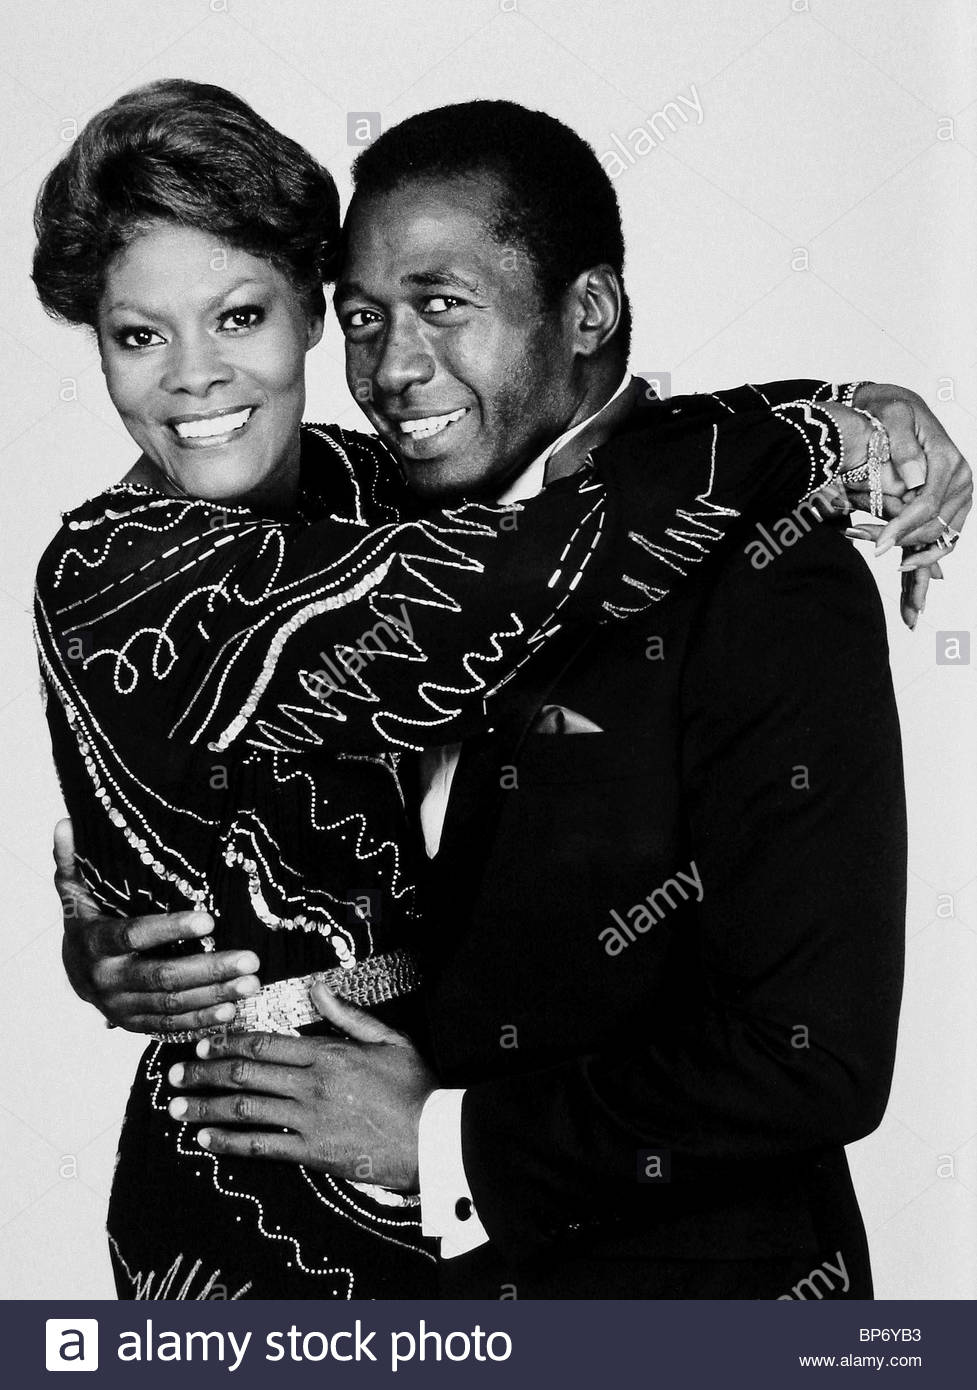 DIONNE WARWICK BEN VEREEN HERE'S TELEVISION ENT. (1983) - Stock Image